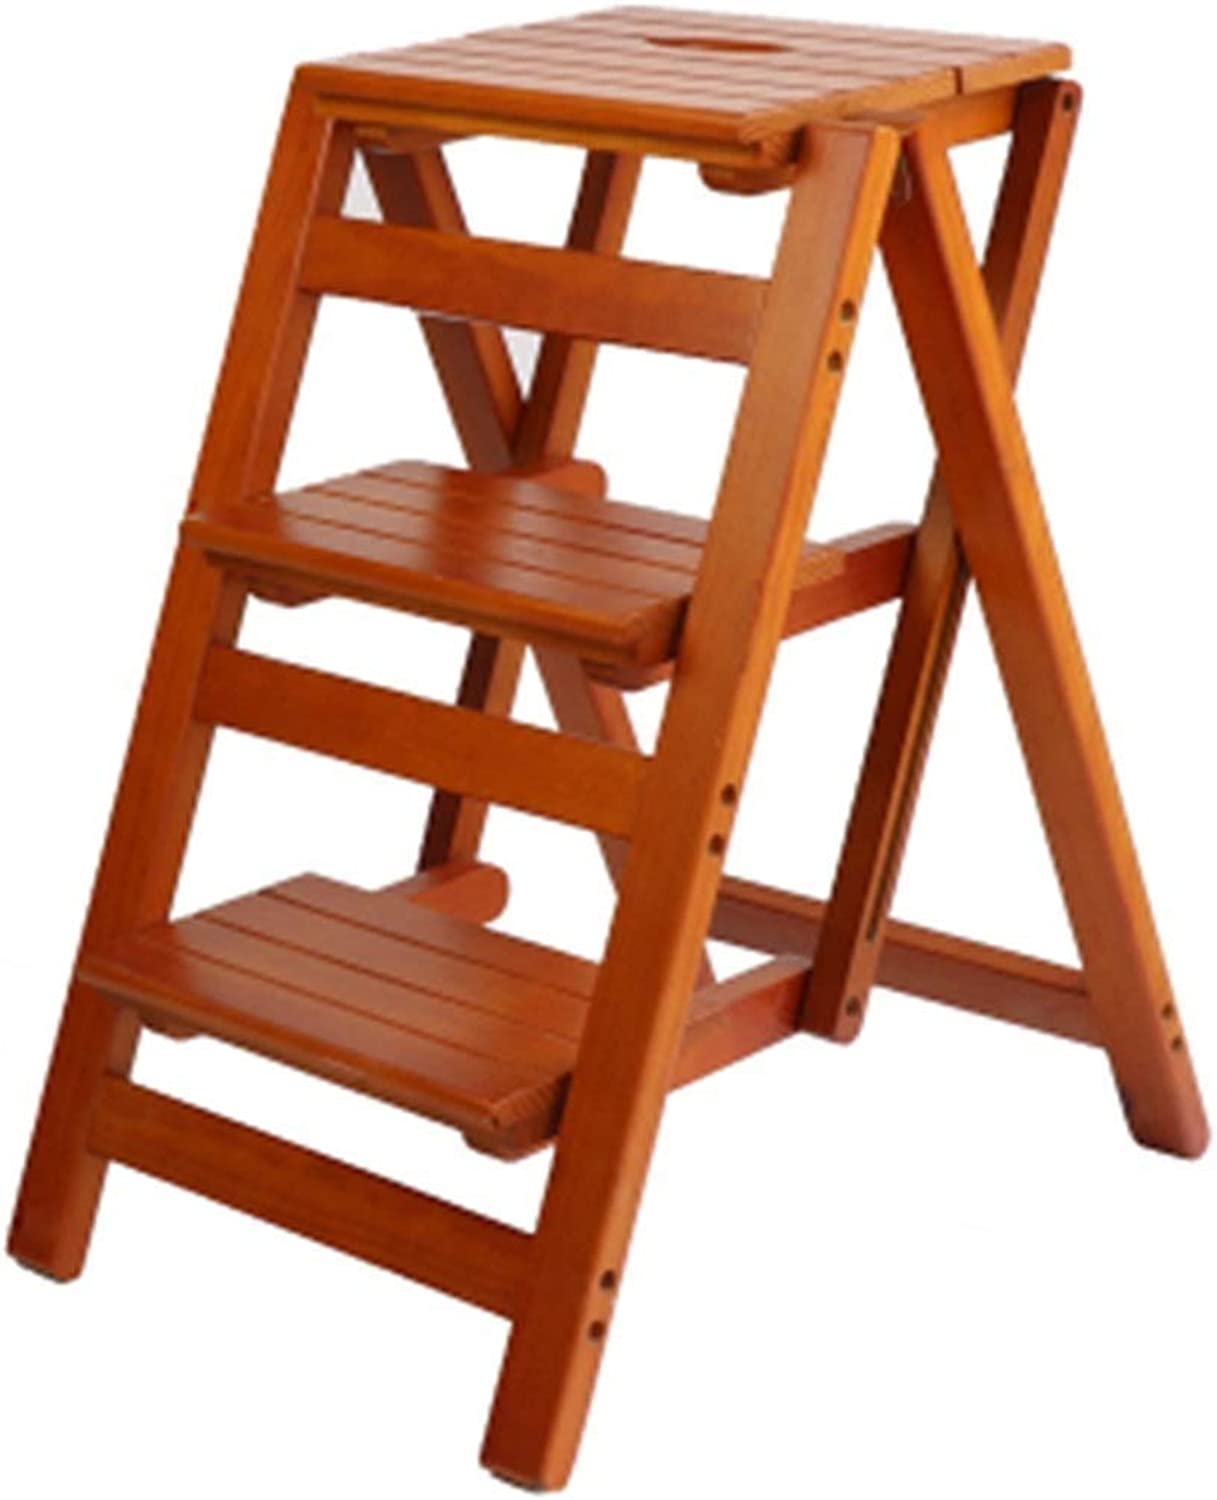 JDQ-3 Step Folding Step Stool, Solid Wood Thick Non-Slip Safety Stable Ladder, Living Room Kitchen Library Flower Stand